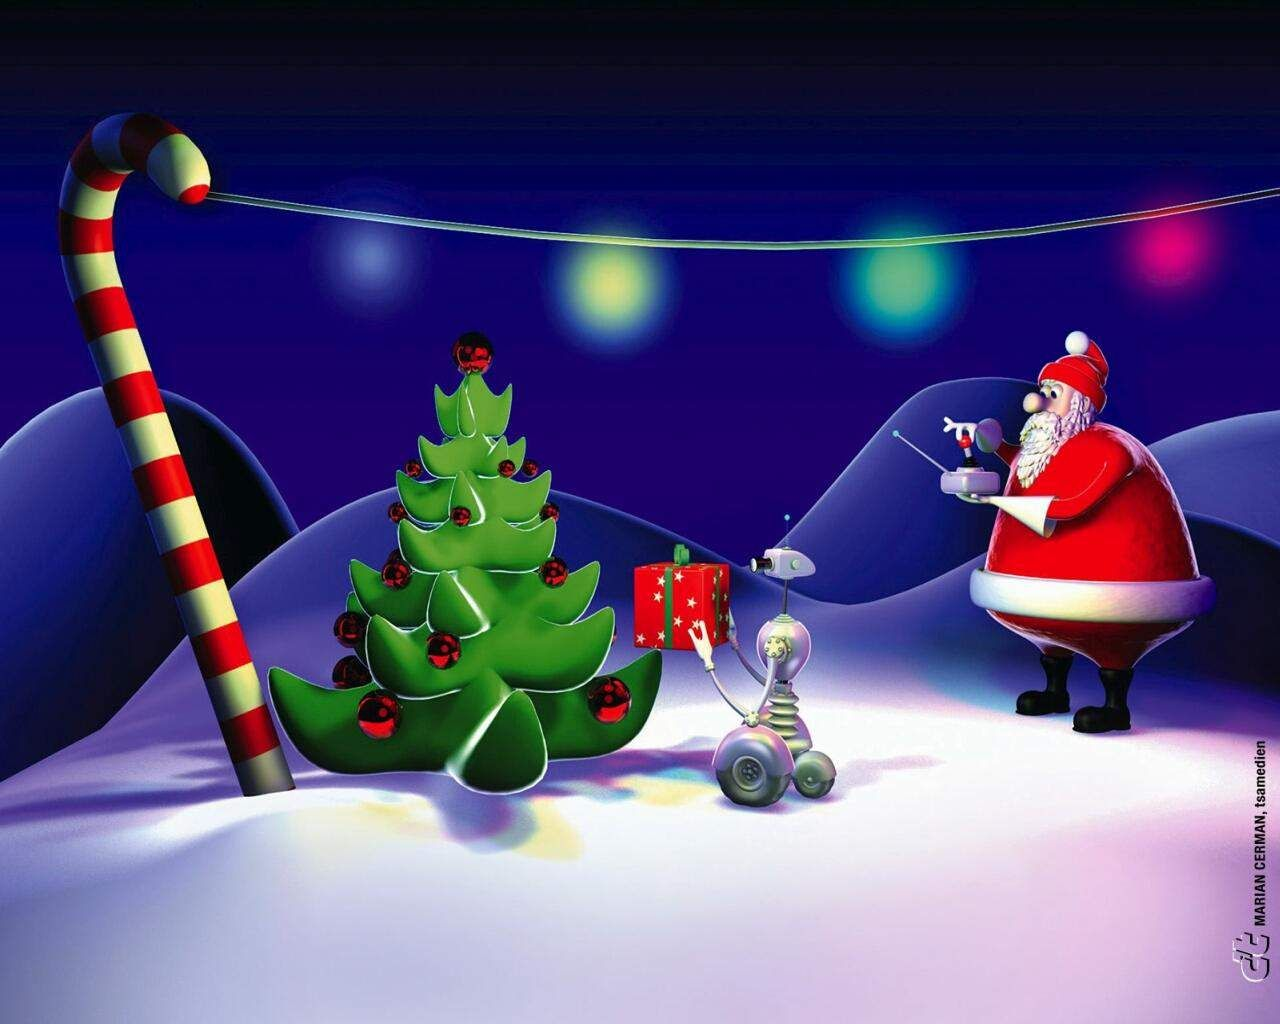 new santa animated merry christmas HD wallpaper Wallpaper with ...